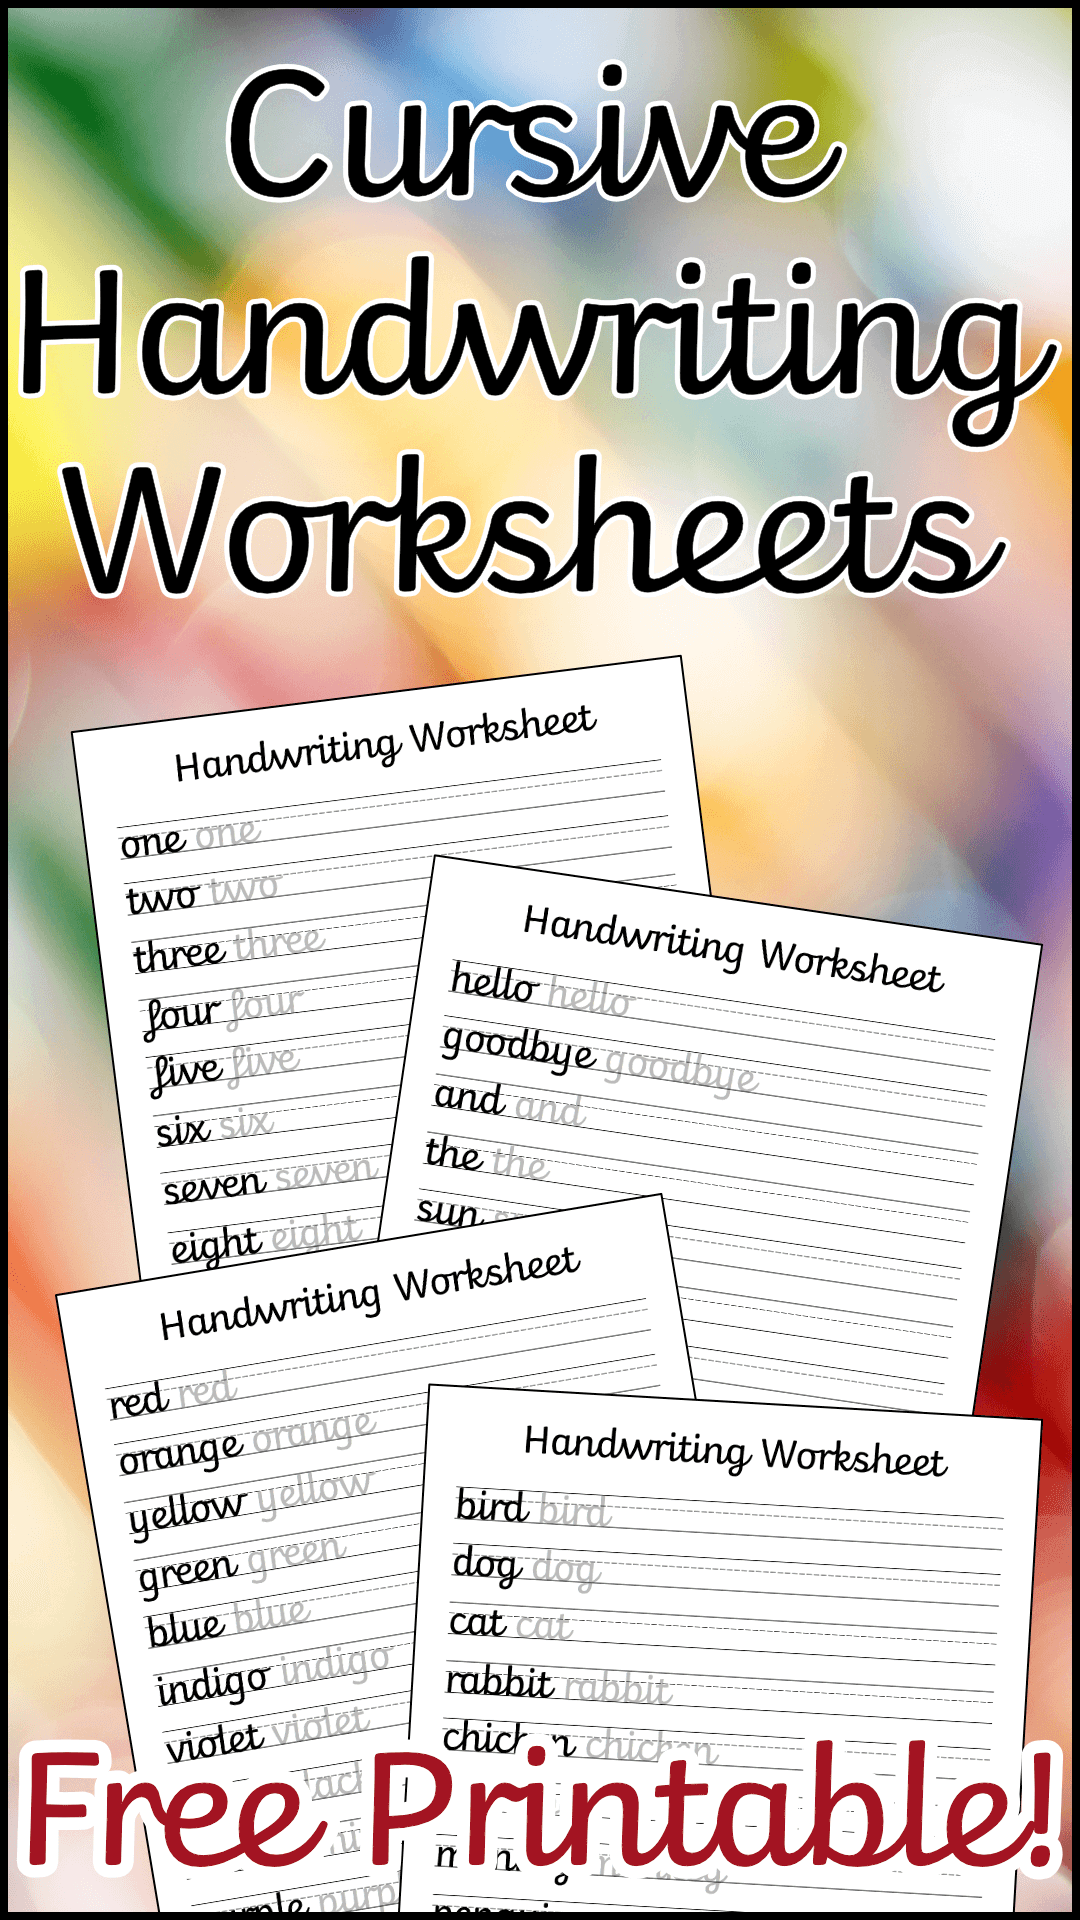 Cursive Handwriting Worksheets Free Printable In